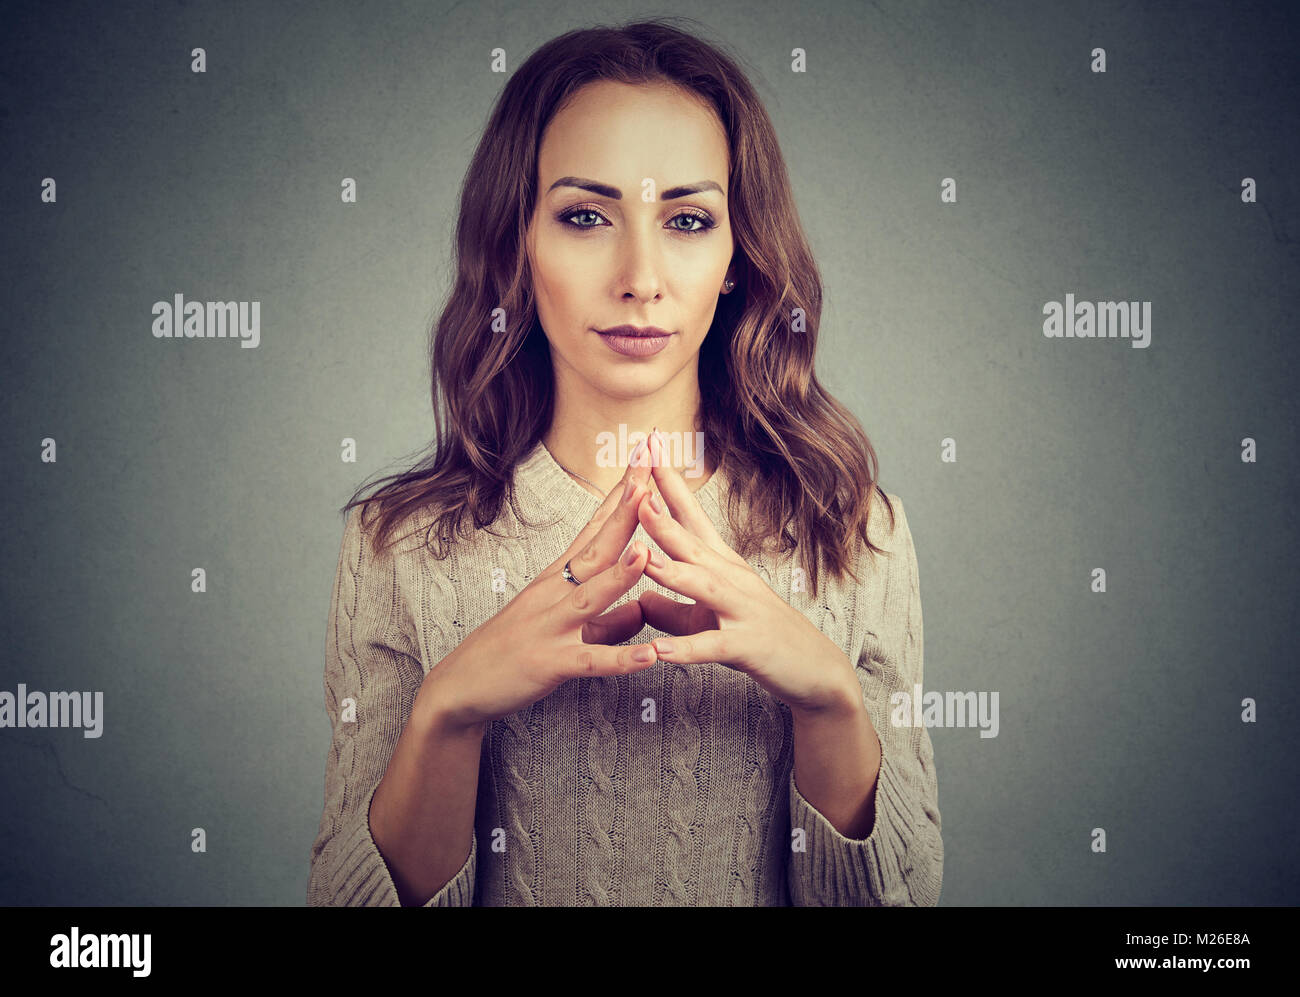 Young sly woman holding hands together spinning intrigues and looking cunning. - Stock Image